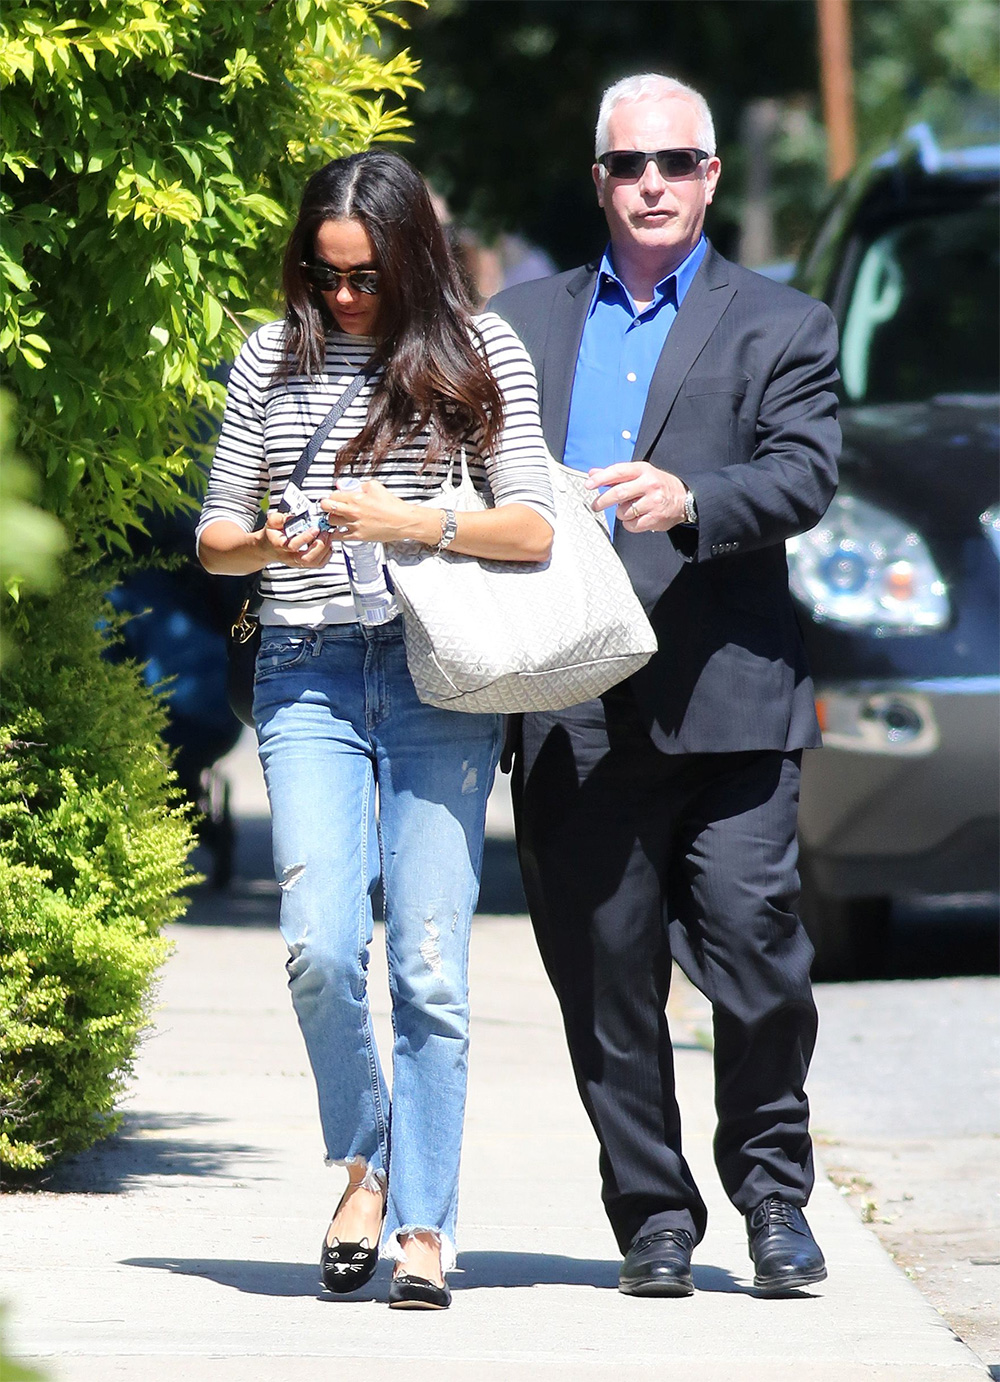 Meghan Markle arrives home surrounded by security in Toronto on July 6,  2017.